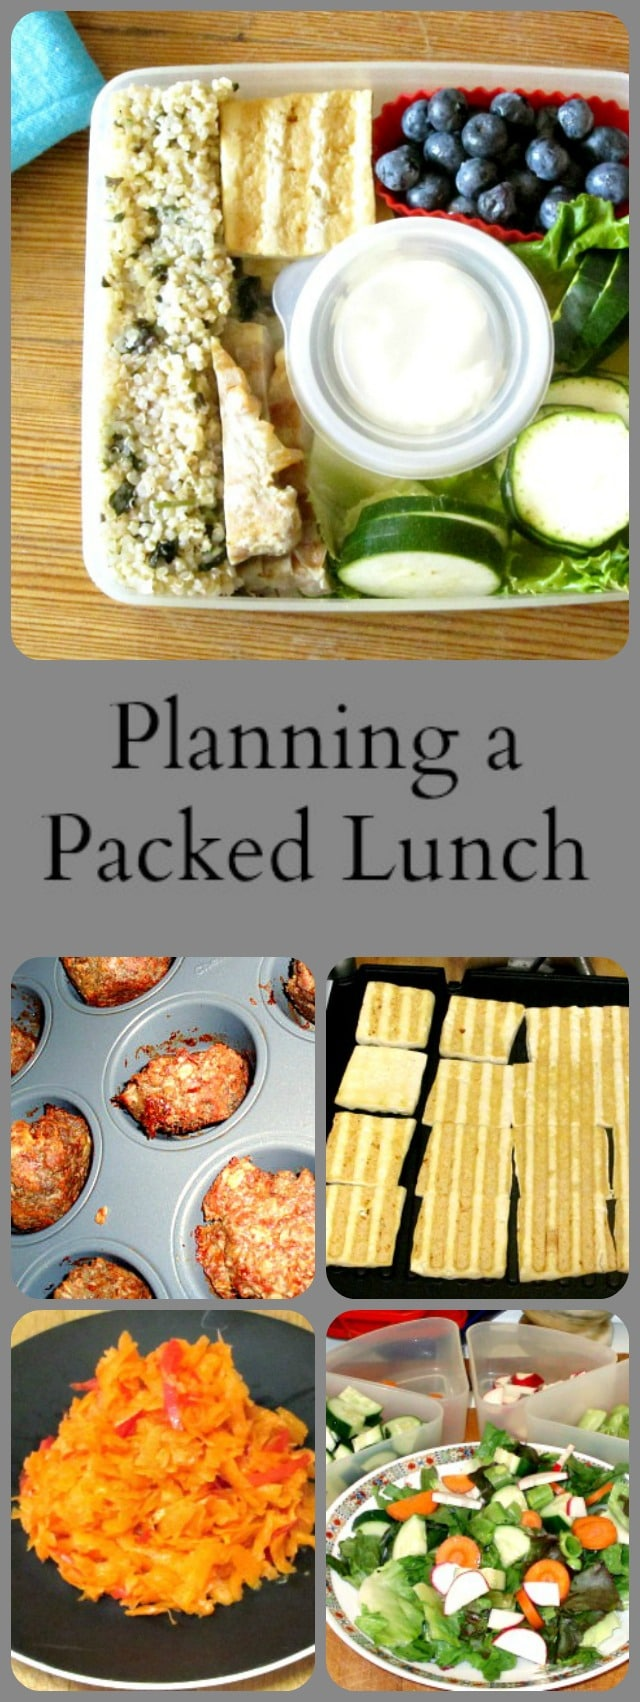 Do you need to make a packed lunch, for yourself or a family member? Here is a collection of ideas, and links to a few useful recipes, to make the process easier!